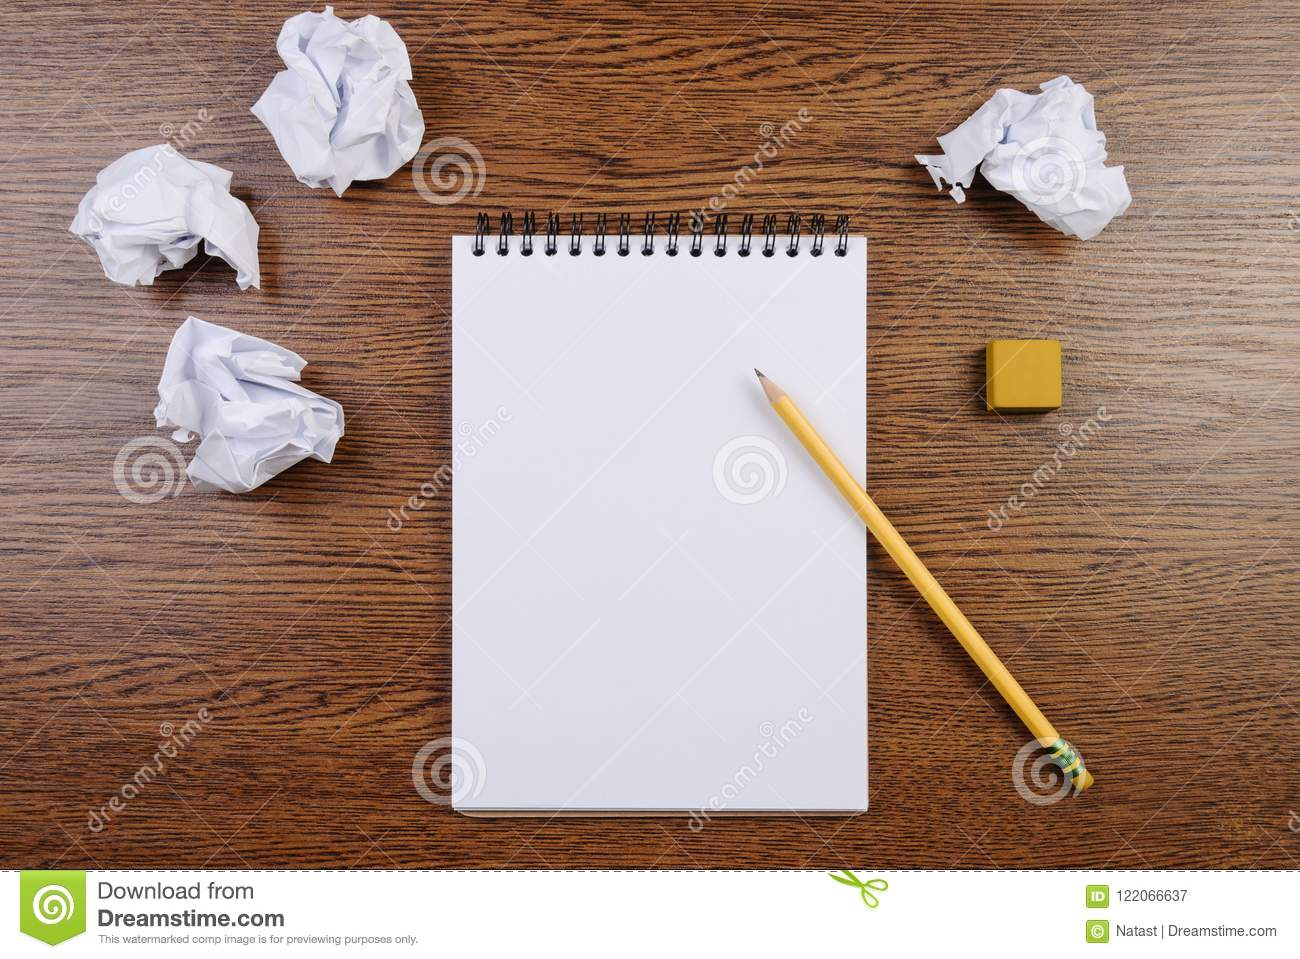 Notepad on a wooden table and crumpled sheets around. Flat lay.